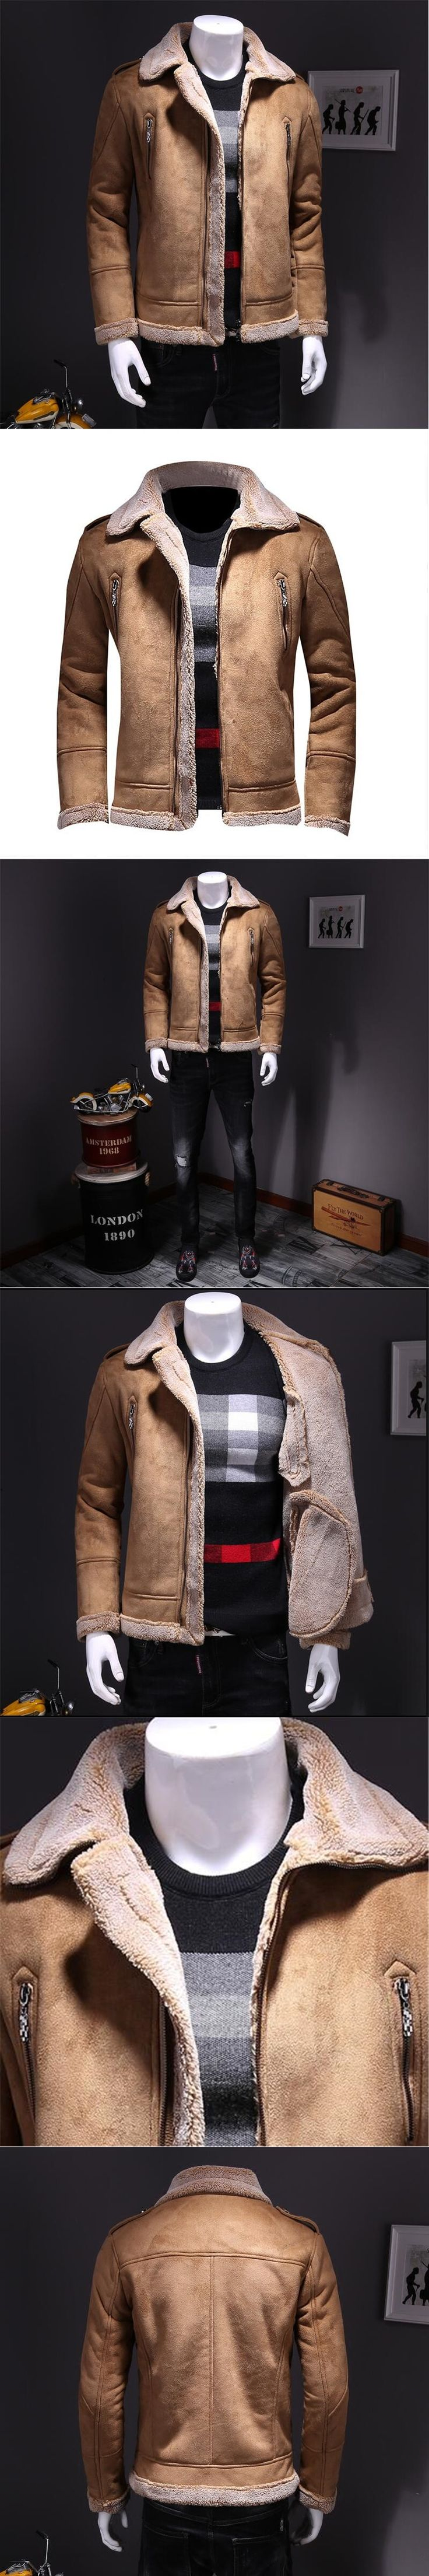 New Autumn Leather Coat Men Fashion Warm Faux Leather Coats Casual Loose Thicken Zipper Outerwear Plus Size 4XL A4103